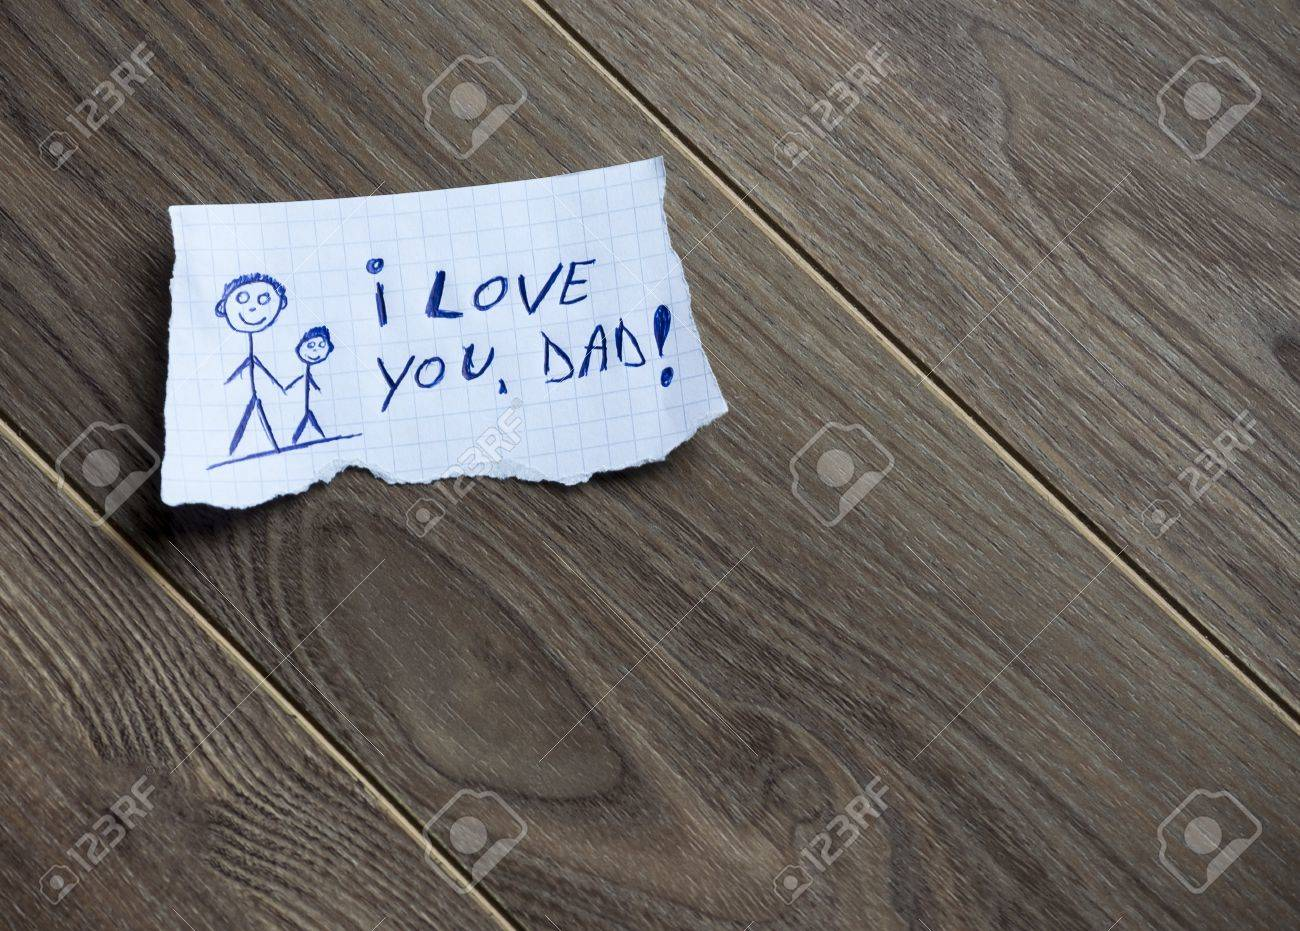 i love you dad written on piece of paper on a wood background i love you dad written on piece of paper on a wood background